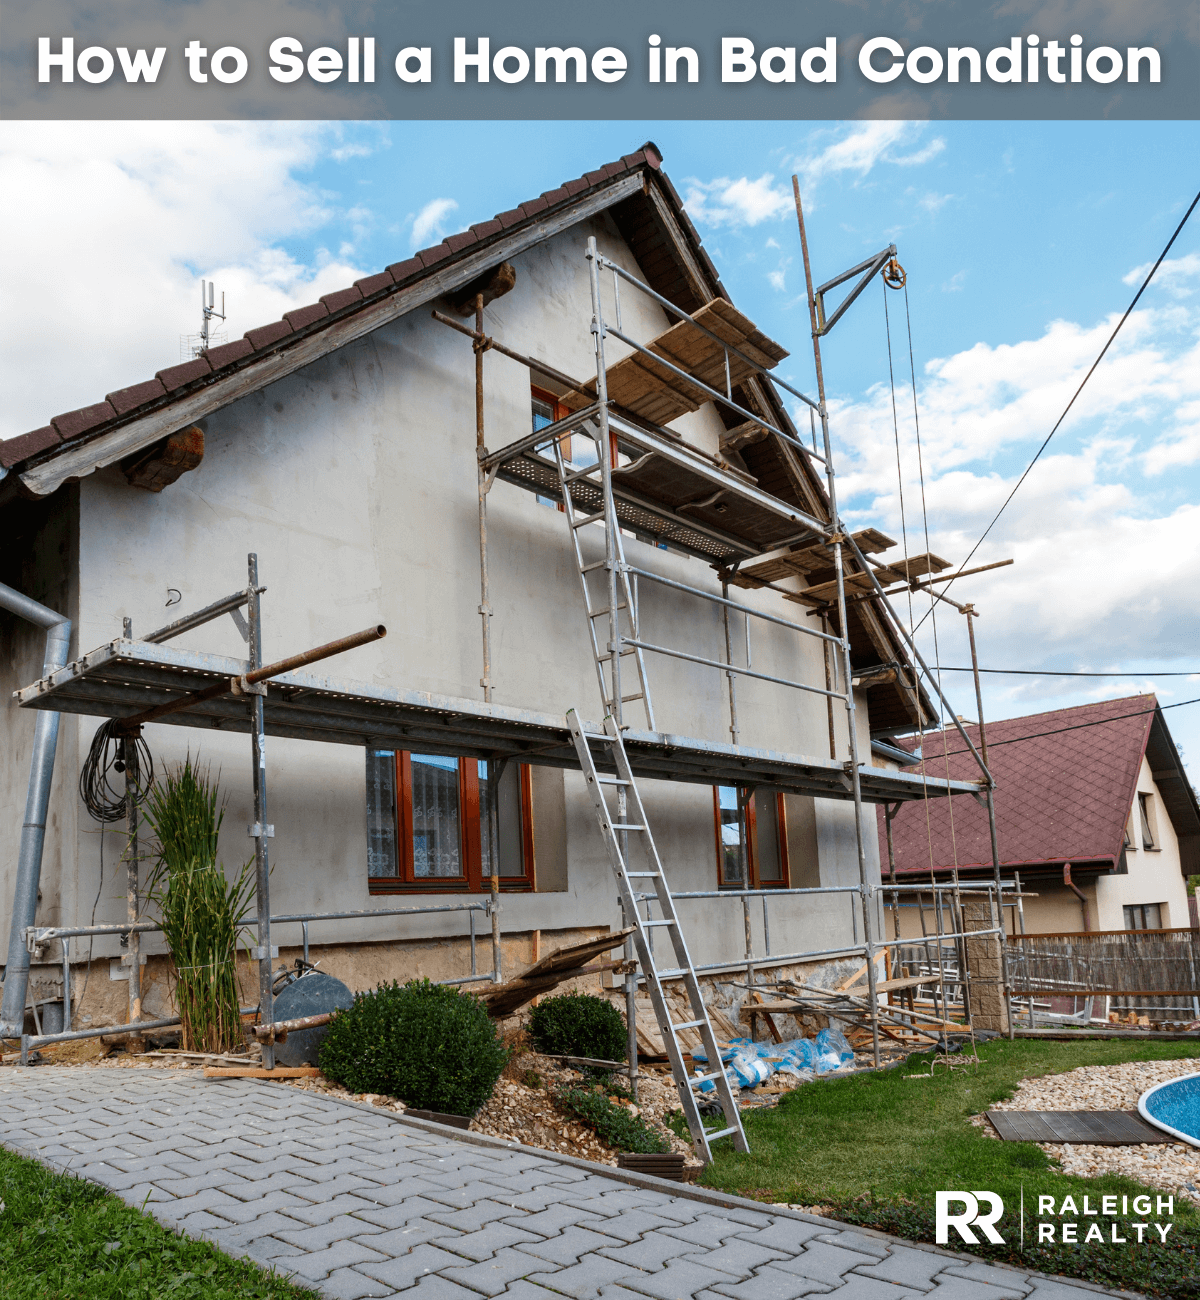 How to Sell a Home in Bad Condition